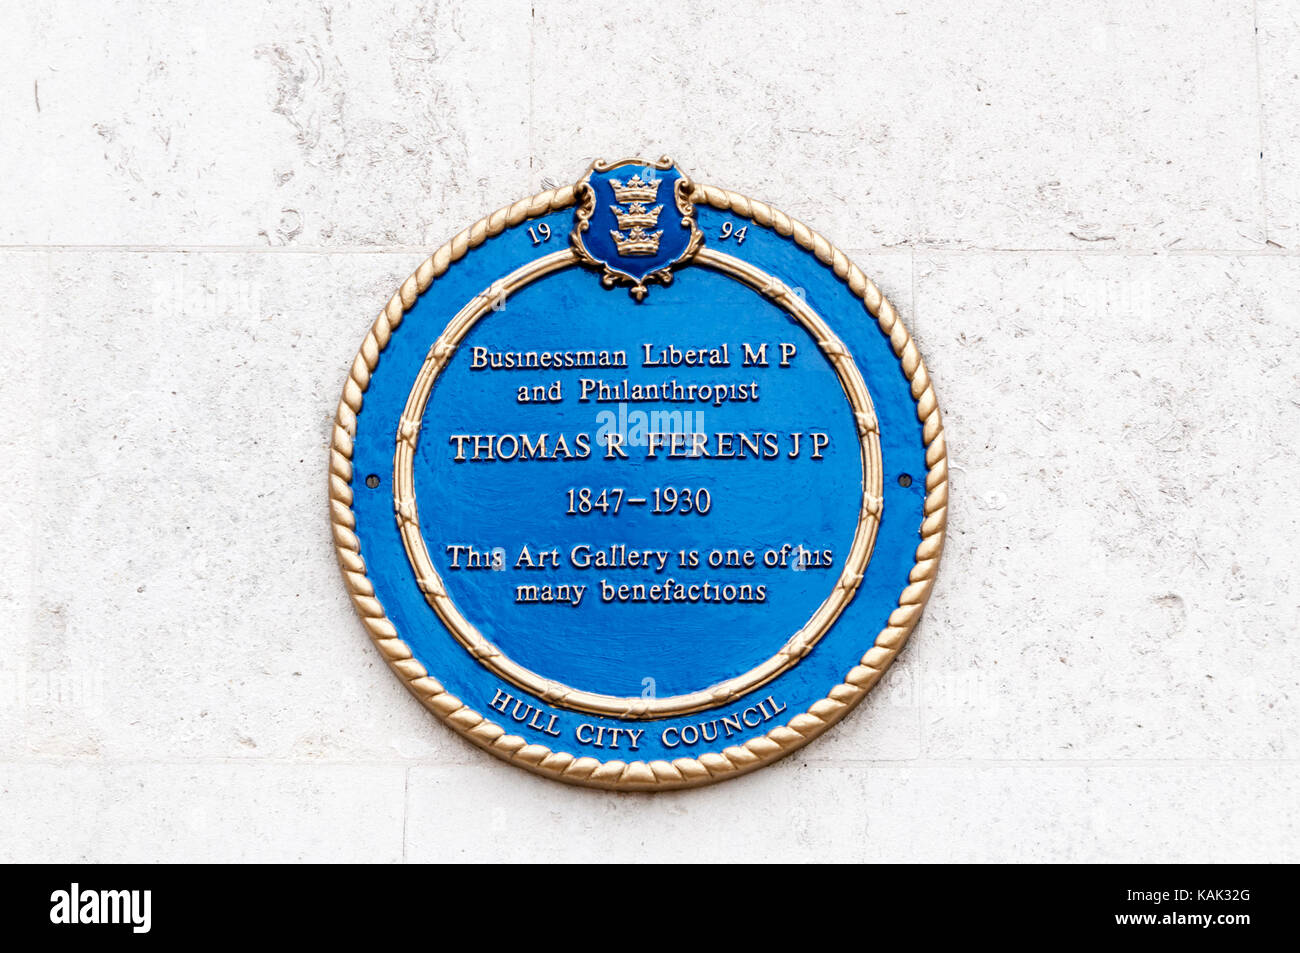 Blue plaque on Ferens Art Gallery in Hull Commemorates Thomas R Ferens. - Stock Image